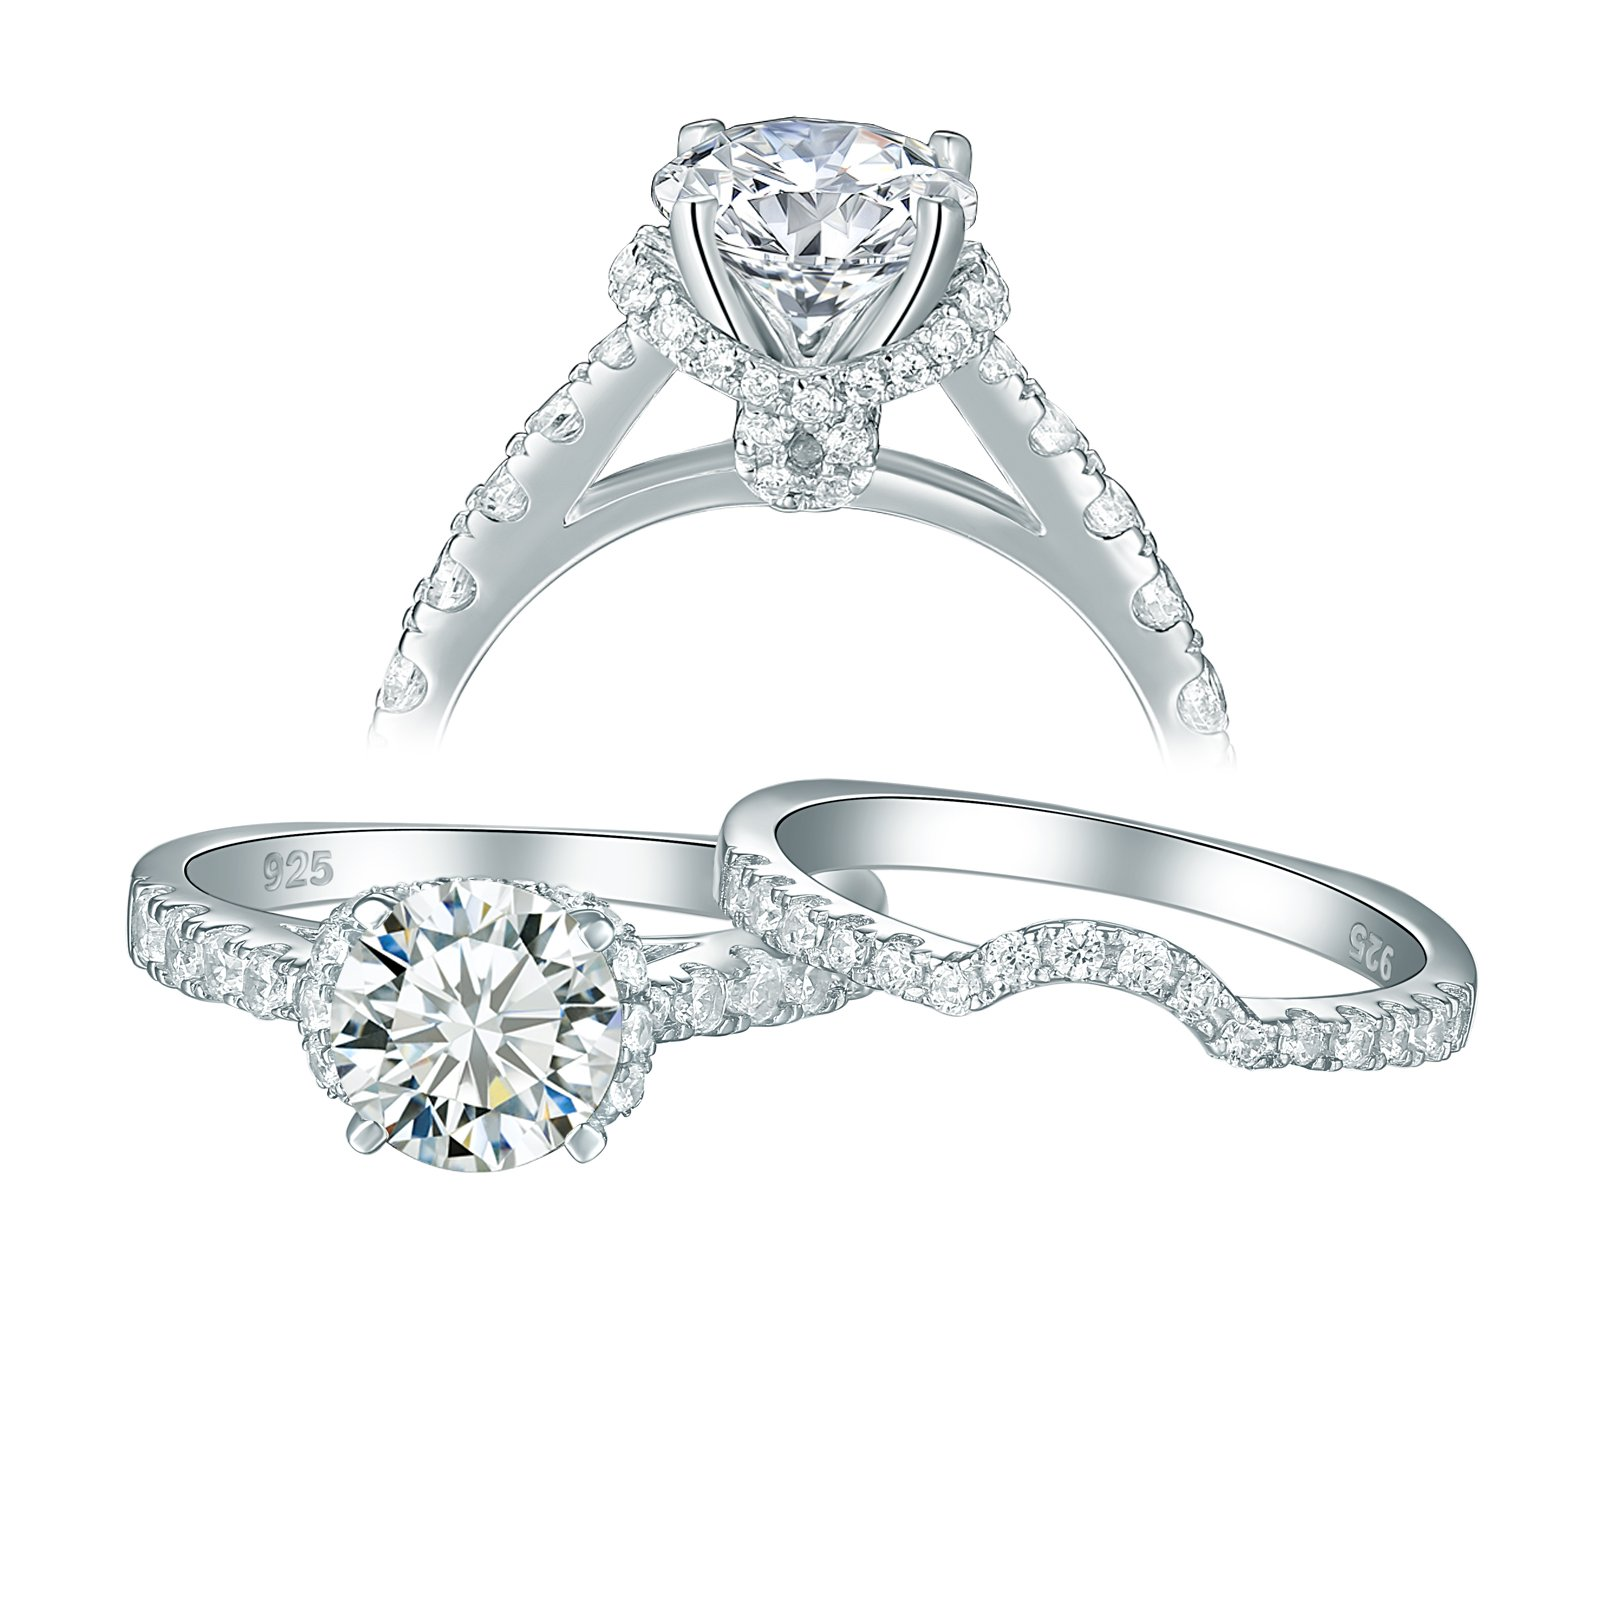 Newshe Jewellery Cz Wedding Rings for Women Engagement Bridal Set Sterling Silver 2ct Princess Size 10